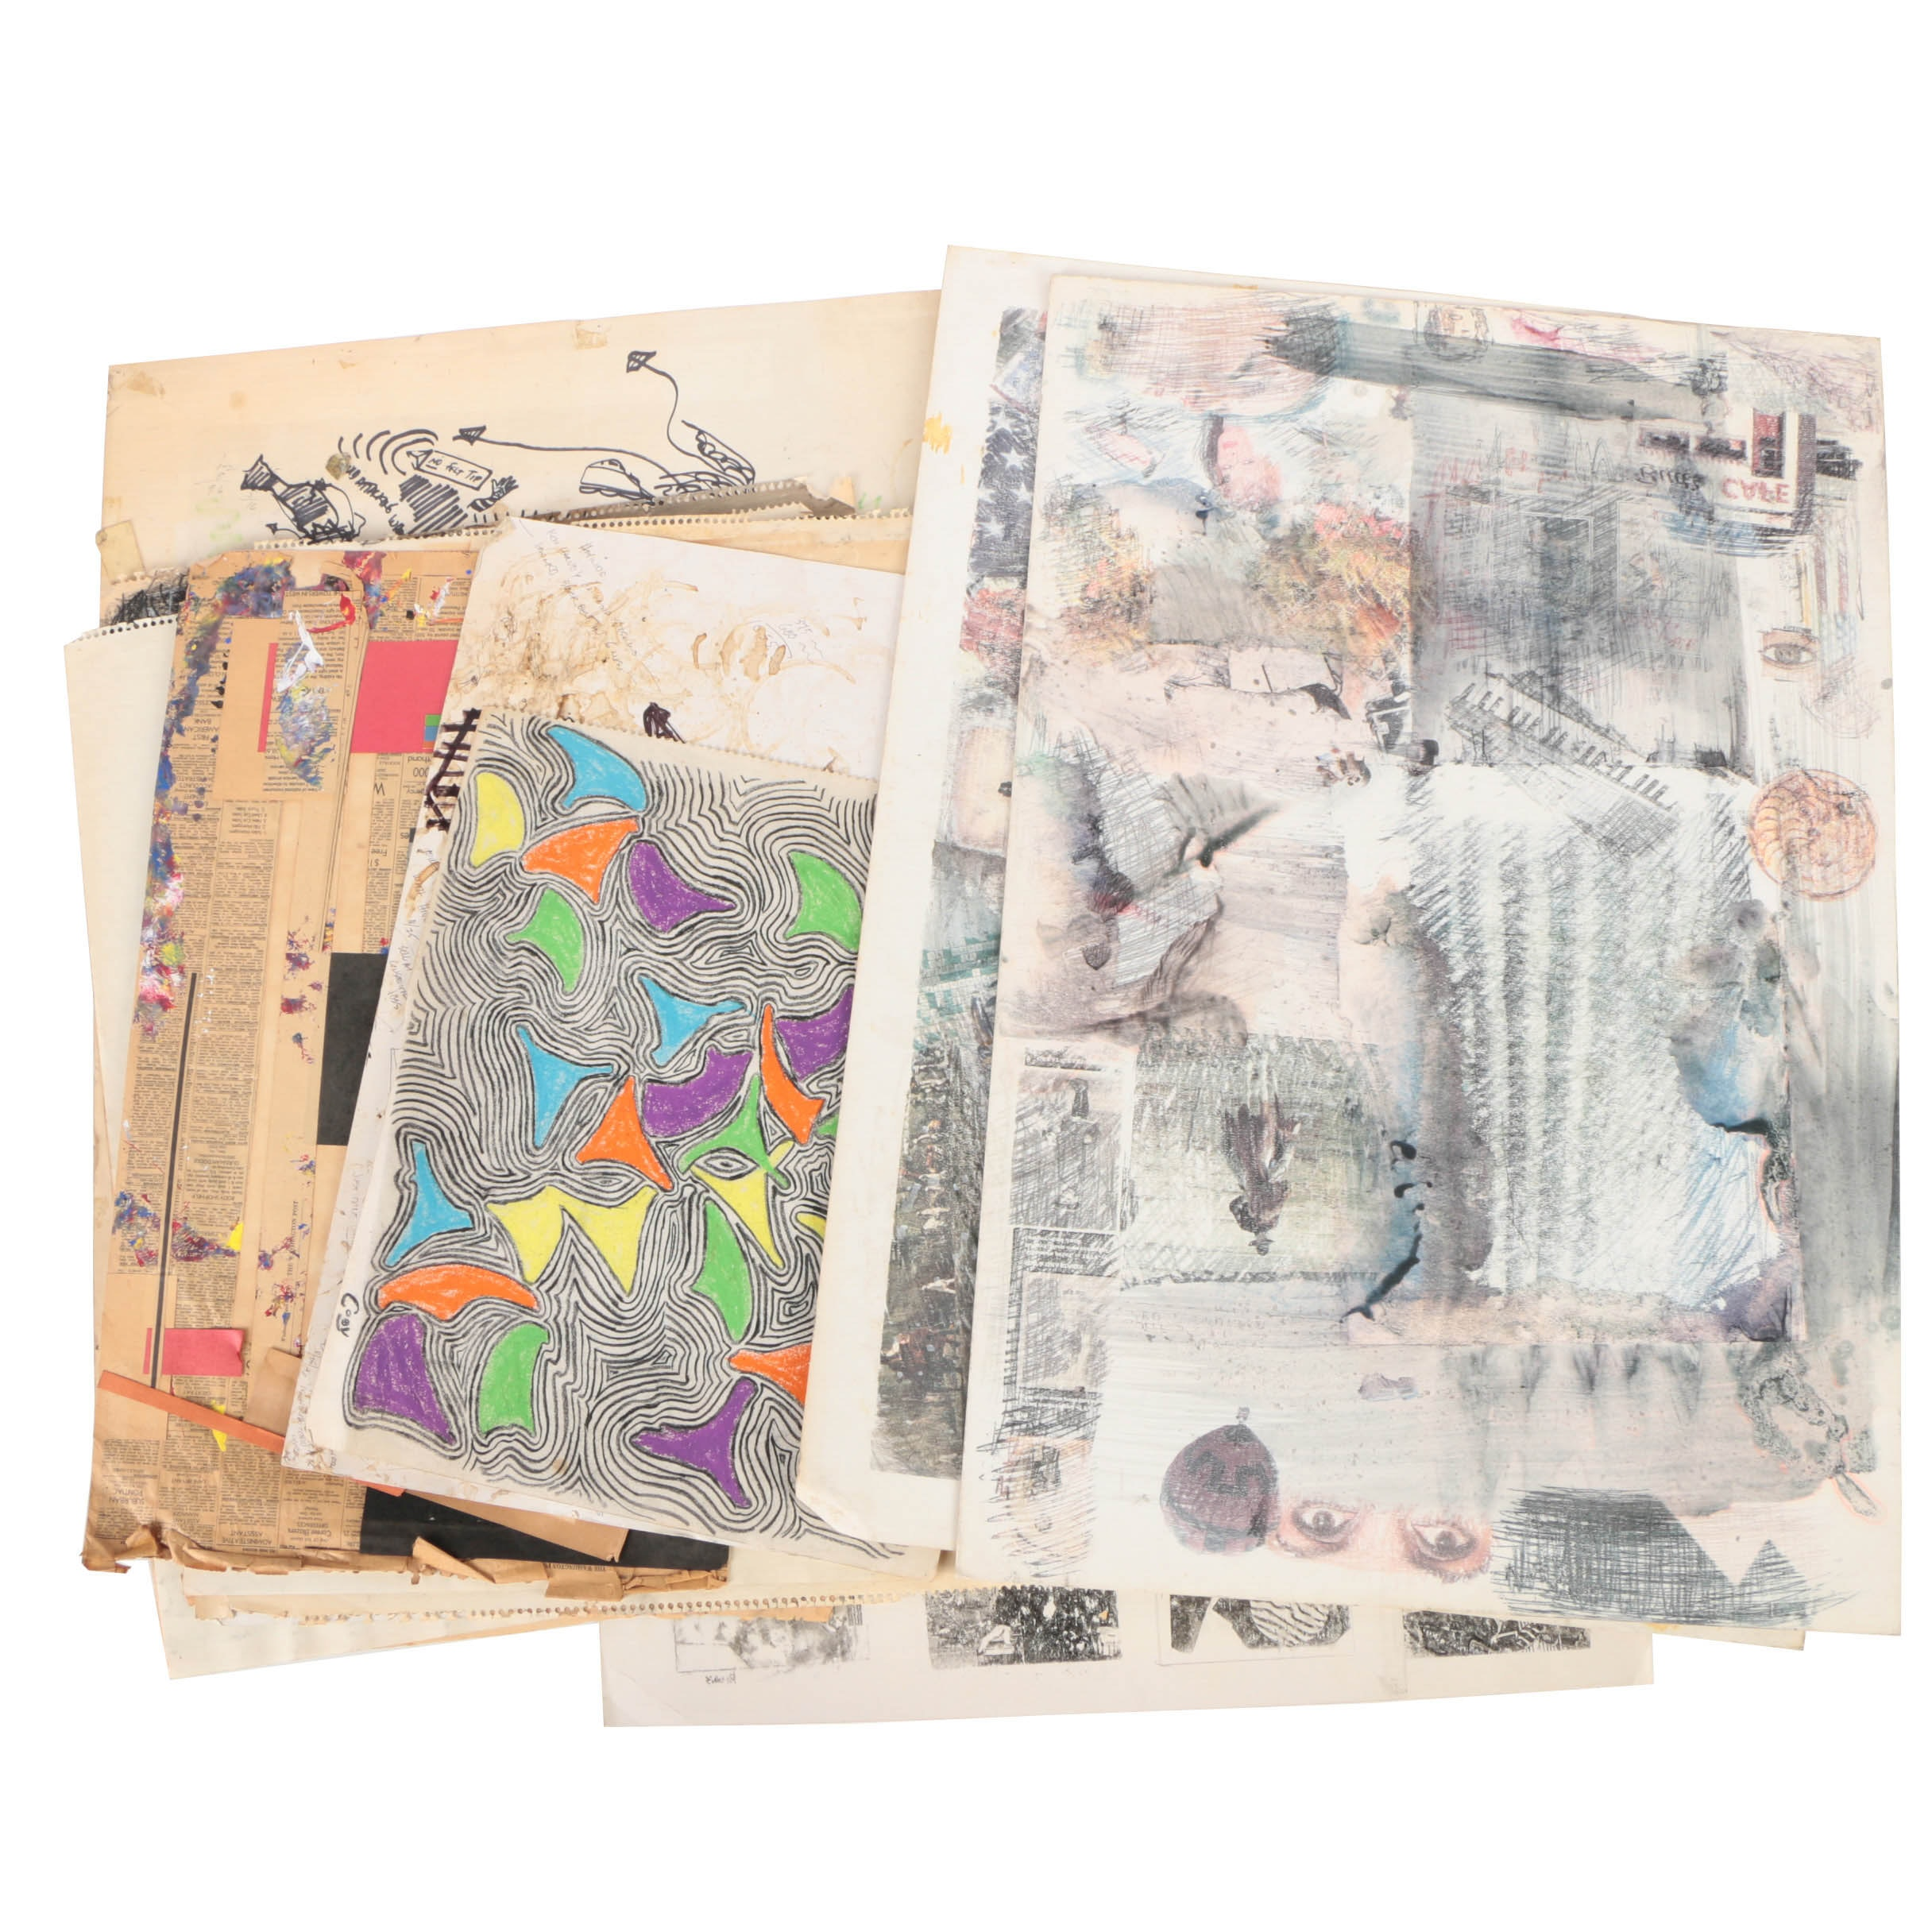 Drawings and Mixed Media Artwork on Paper